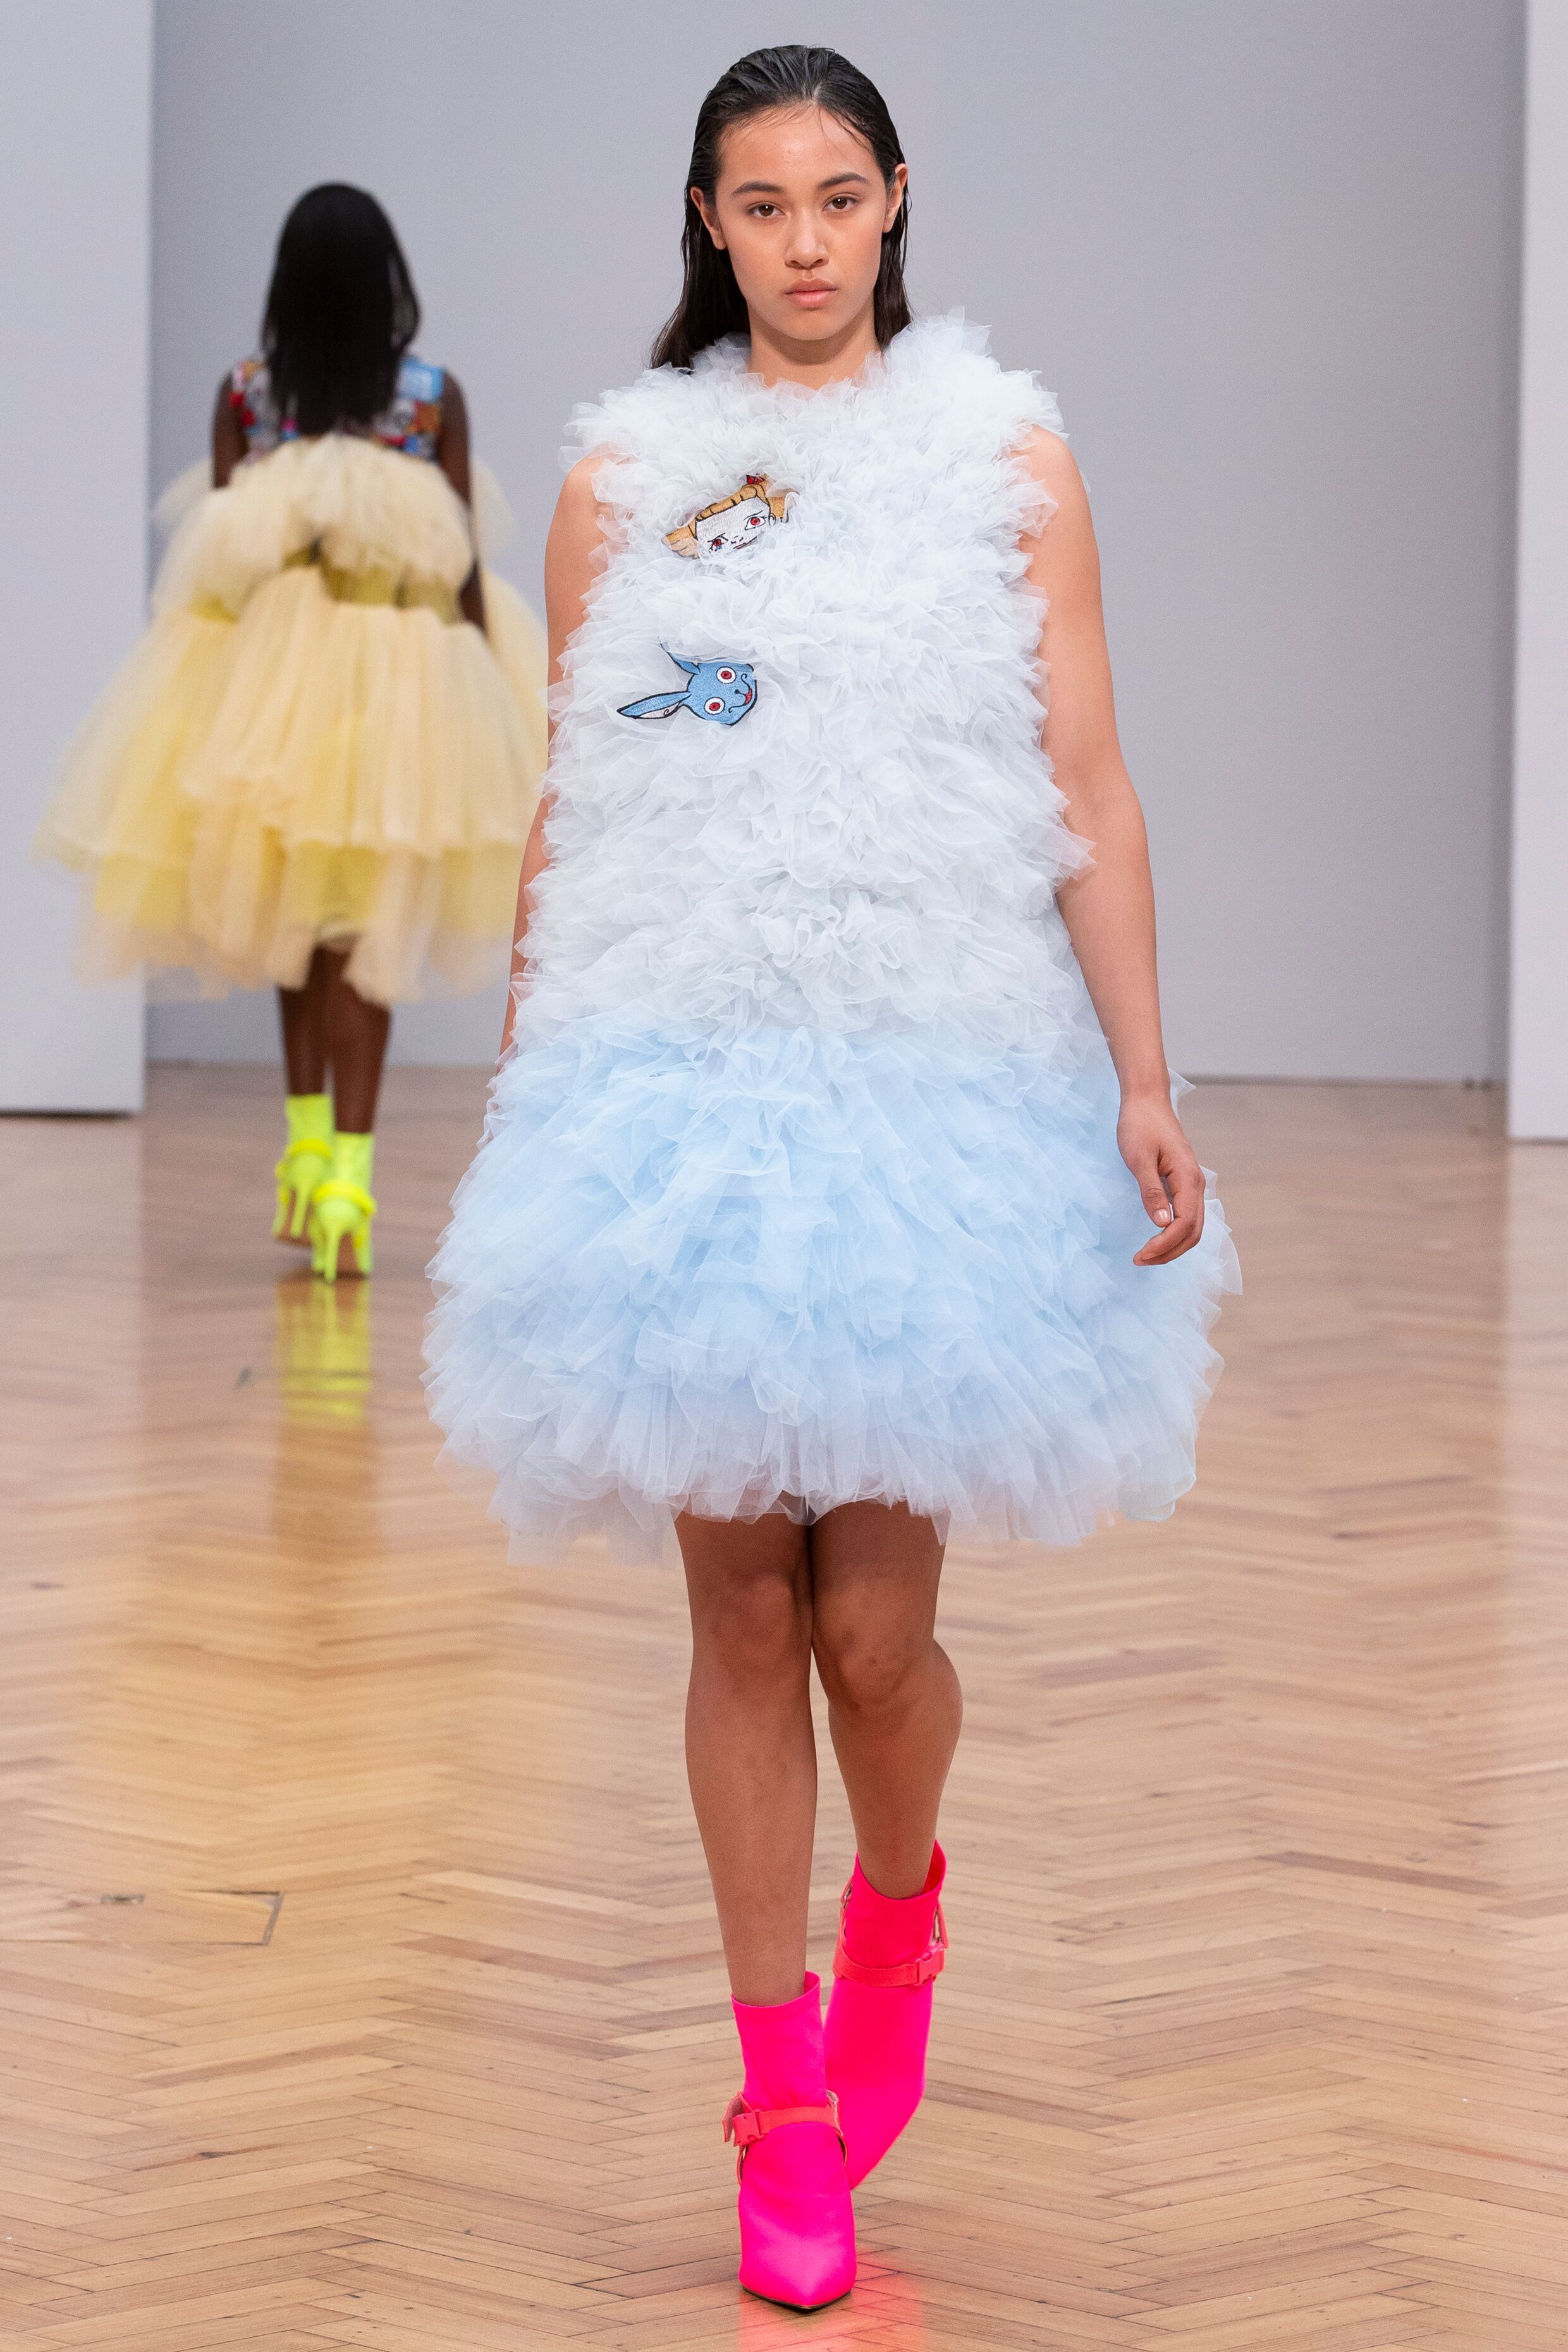 pale blue tulle dress Istituto Marangoni new era fashion show